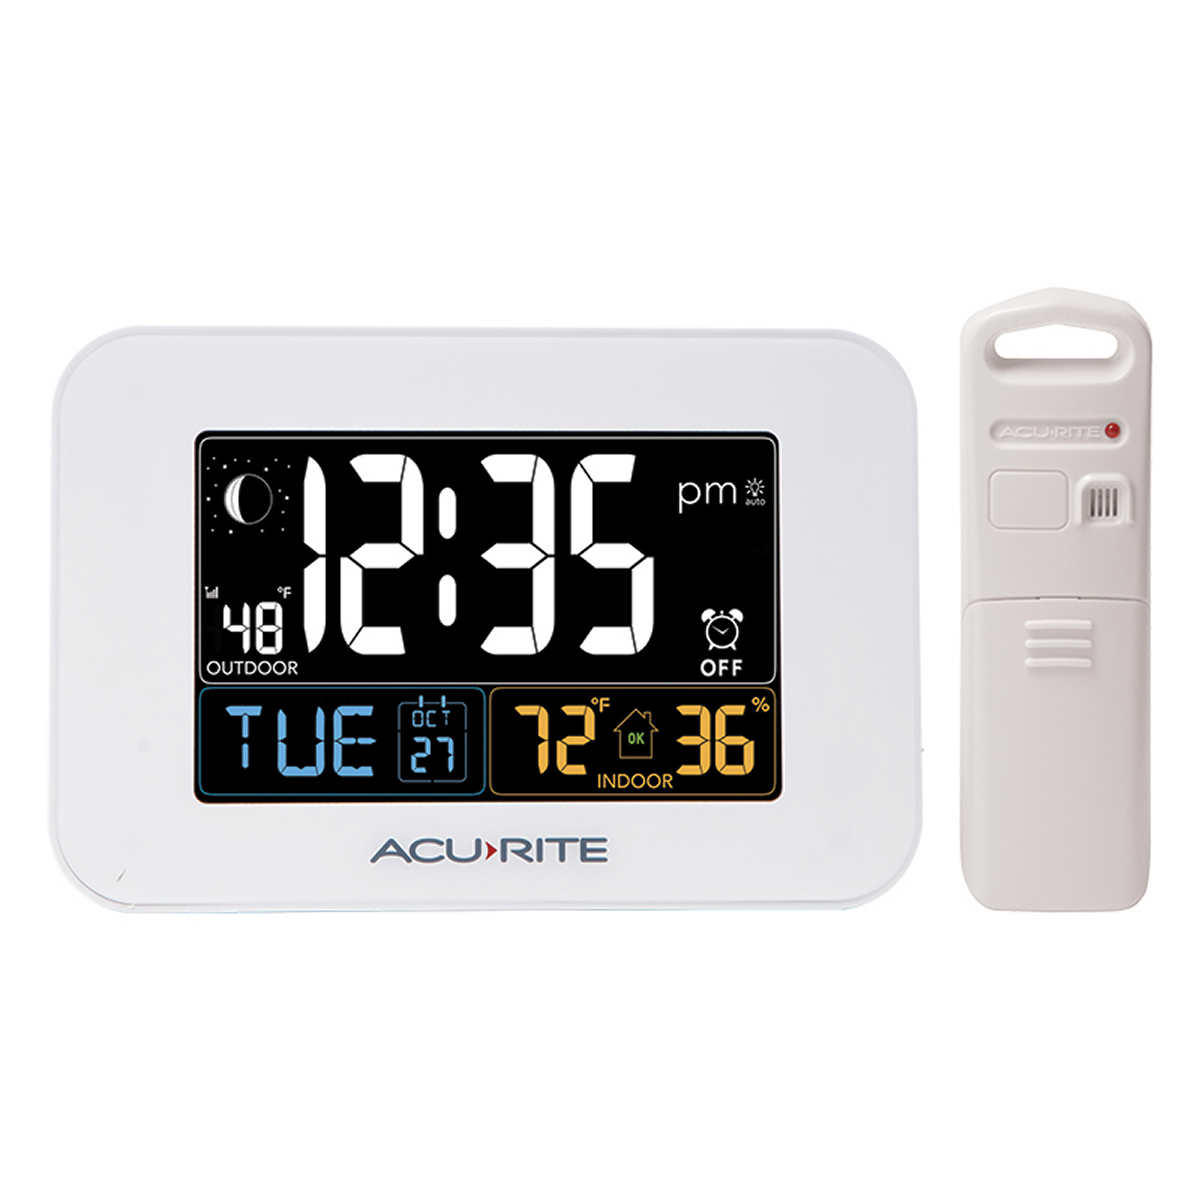 Acurite intelli time alarm clock with indoor and outdoor features click to zoom amipublicfo Image collections